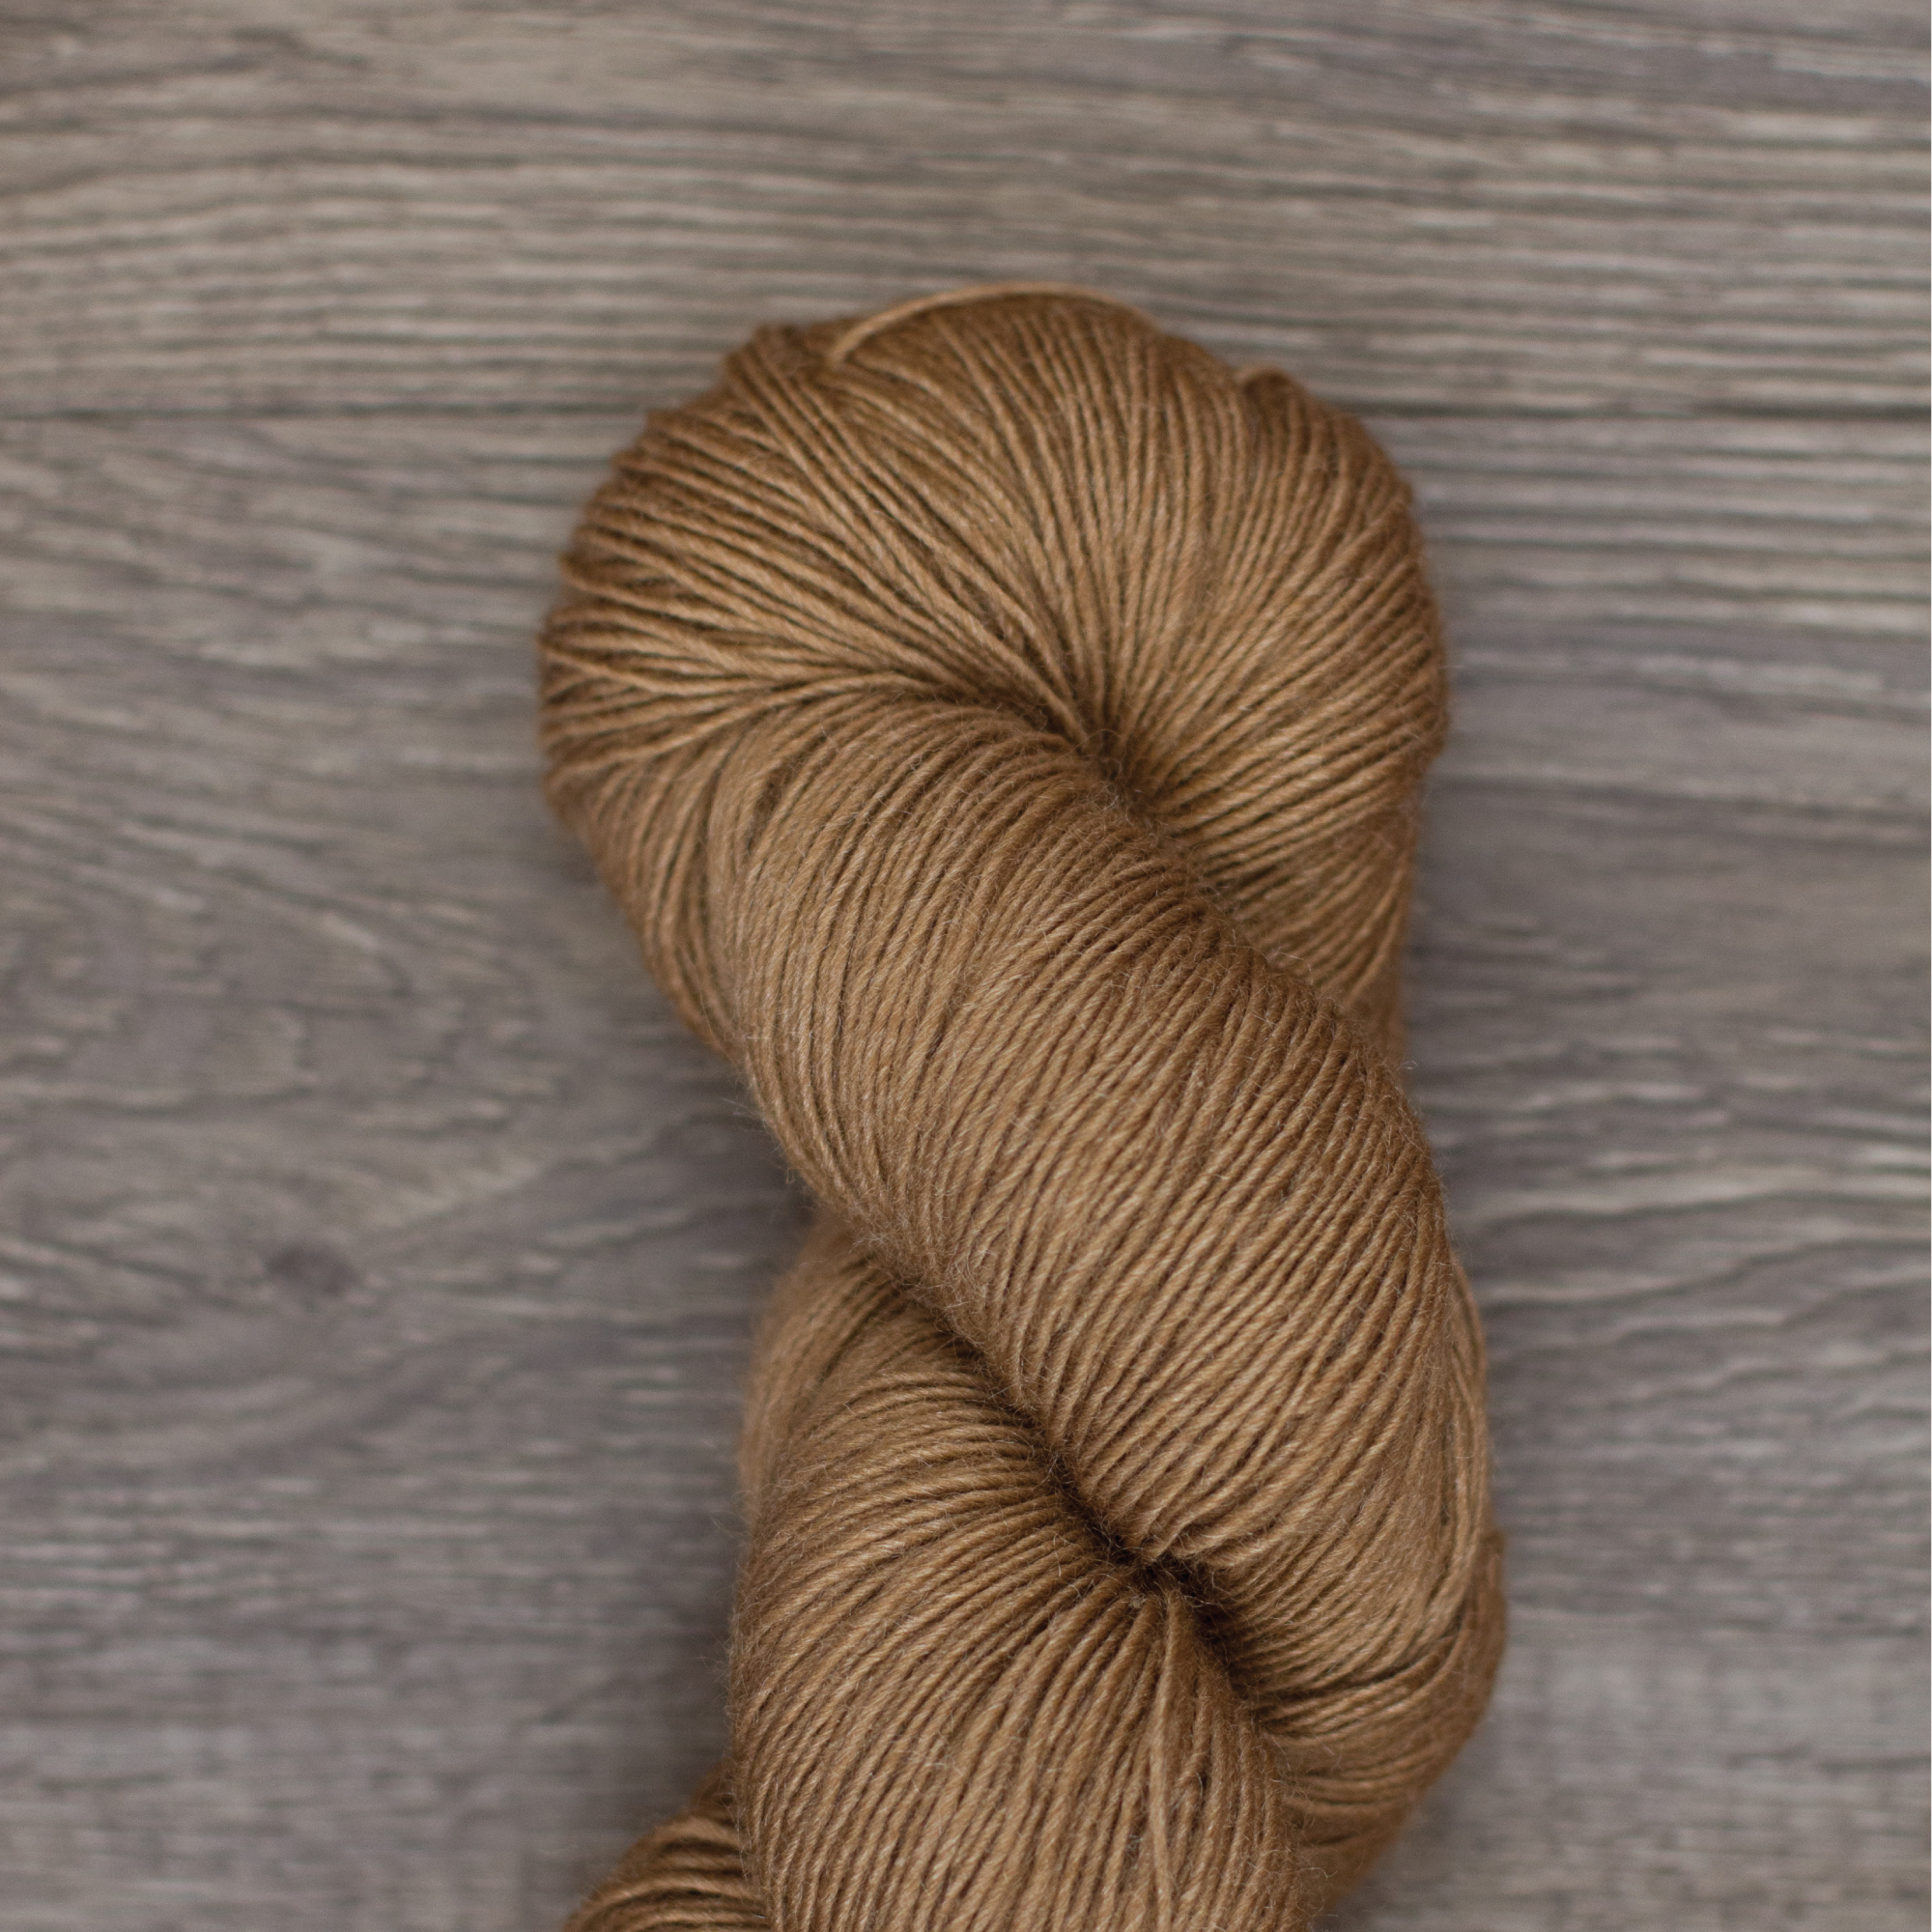 FILO by Cloud9 Fibers — 900029 | MODELING CLAY